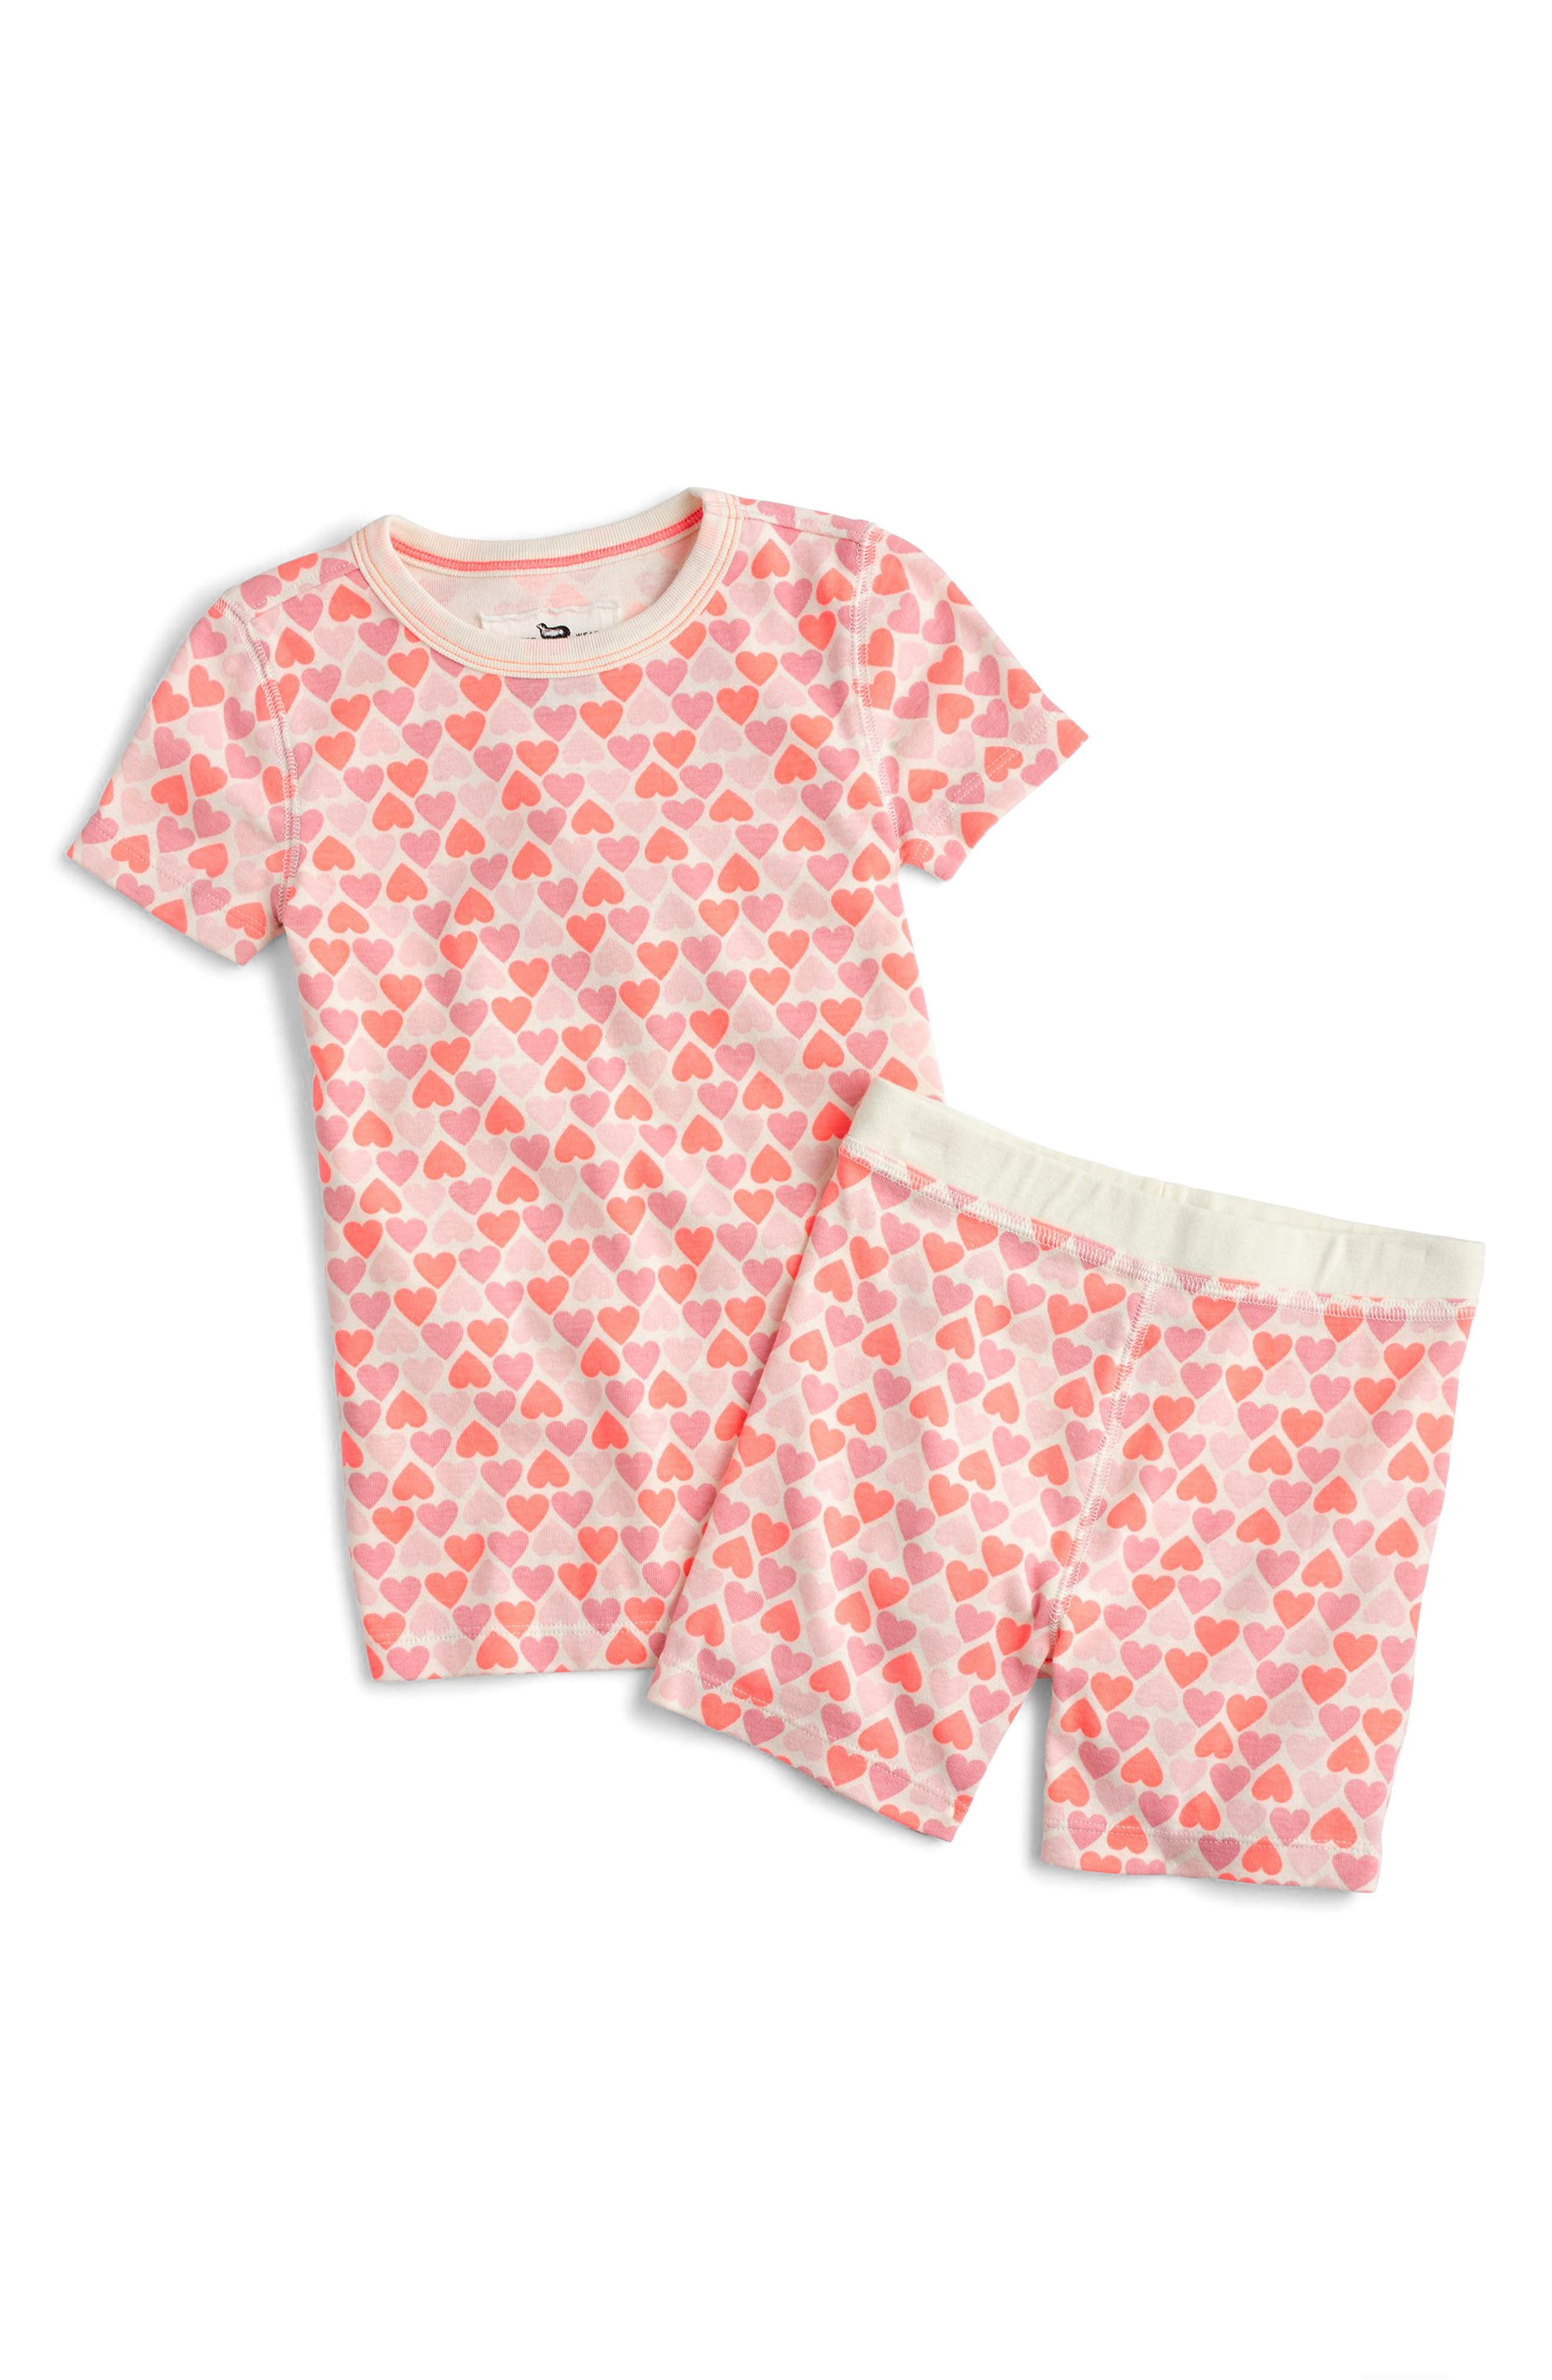 Main Image - crewcuts by J.Crew Stacked Hearts Fitted Two-Piece Pajamas (Toddler Girls, Little Girls & Big Girls)